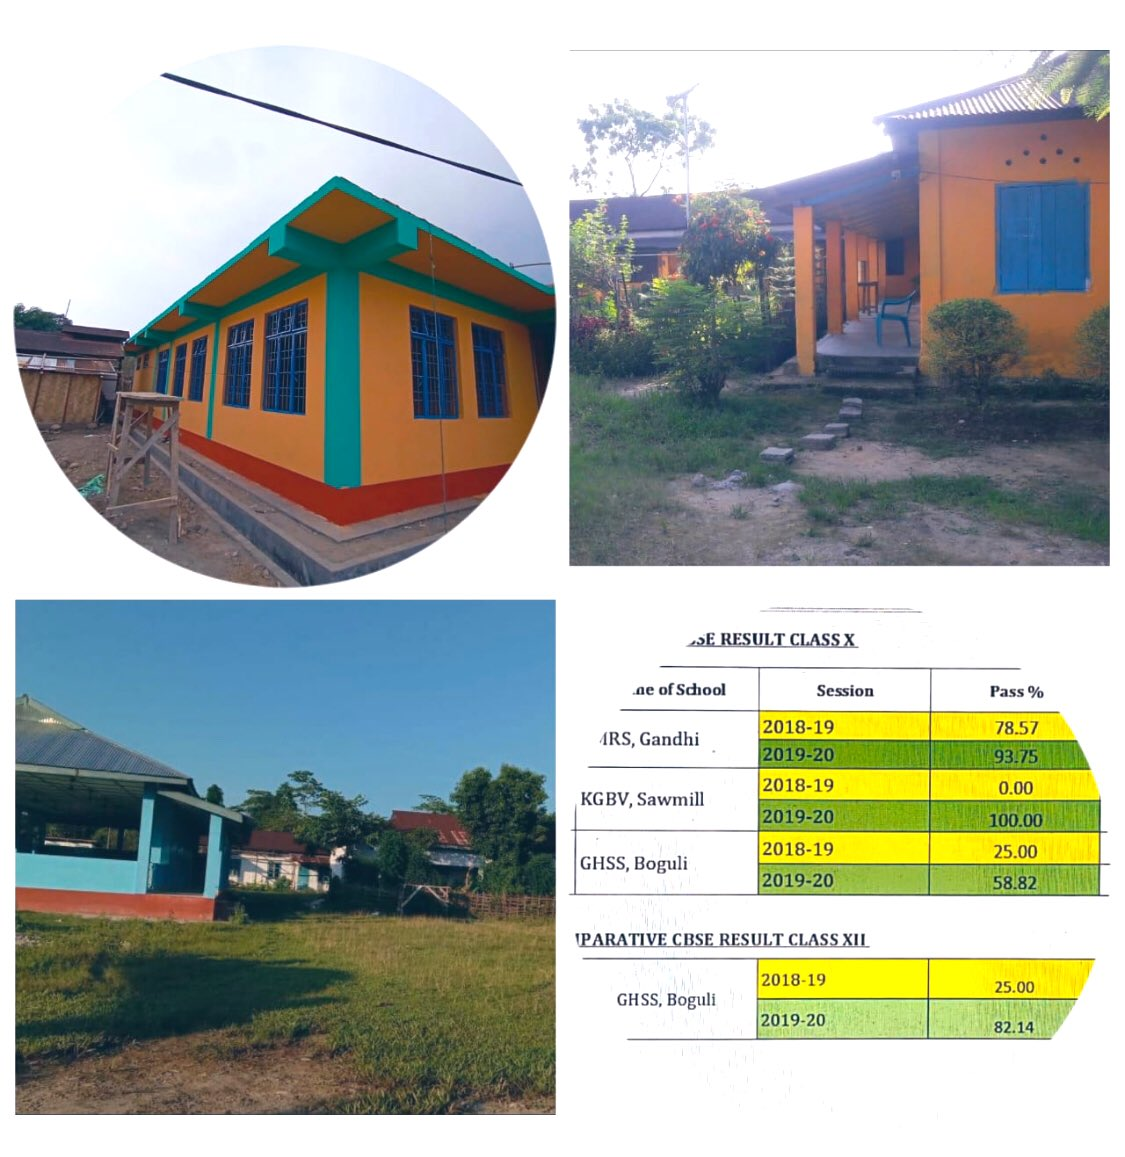 Presenting the 'Turn-around' story of 3 Govt. schools of the District. Apart from the makeovers in physical infra,The pass % of GMRS Gandhi, KGBV Sawmill and GHSS Borguli showed significant increase in recent CBSE results. @educationArPr @ArunachalCMOpic.twitter.com/RGAWXlfz9a